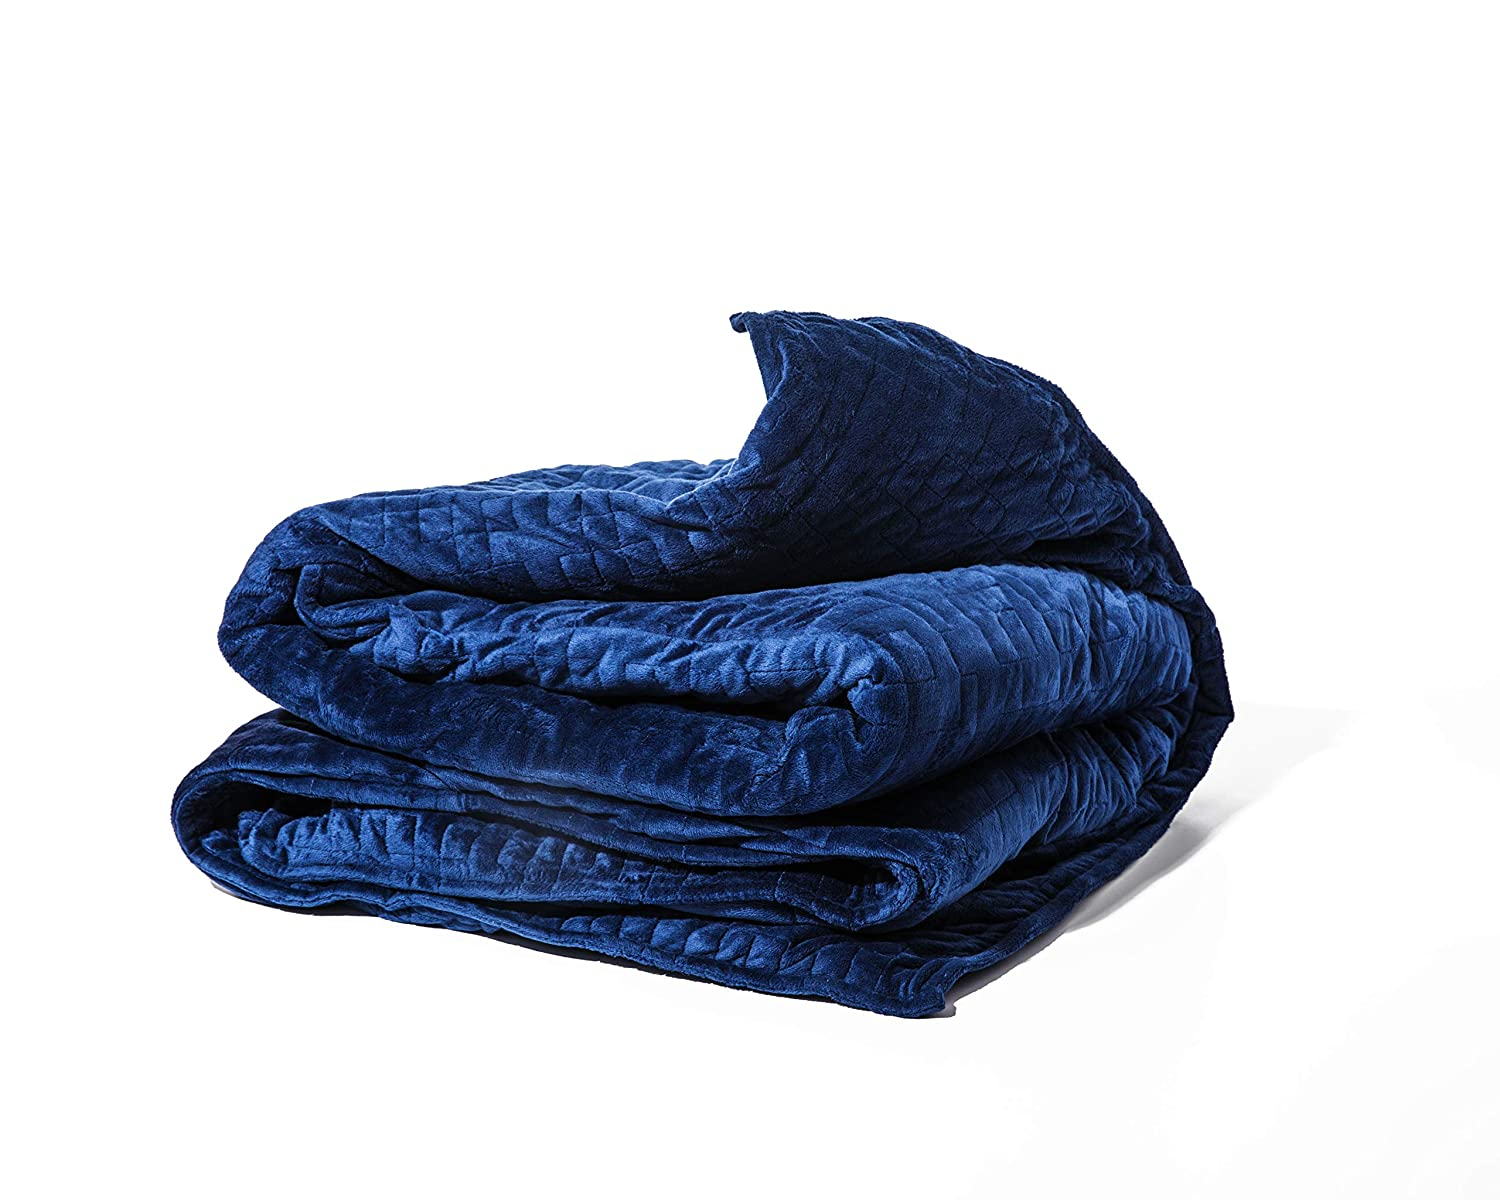 Gravity Blanket, Original Weighted Blanket on the Market, Uses Science To Improve Sleep and Reduce Anxiety, Galaxy Blue, 48